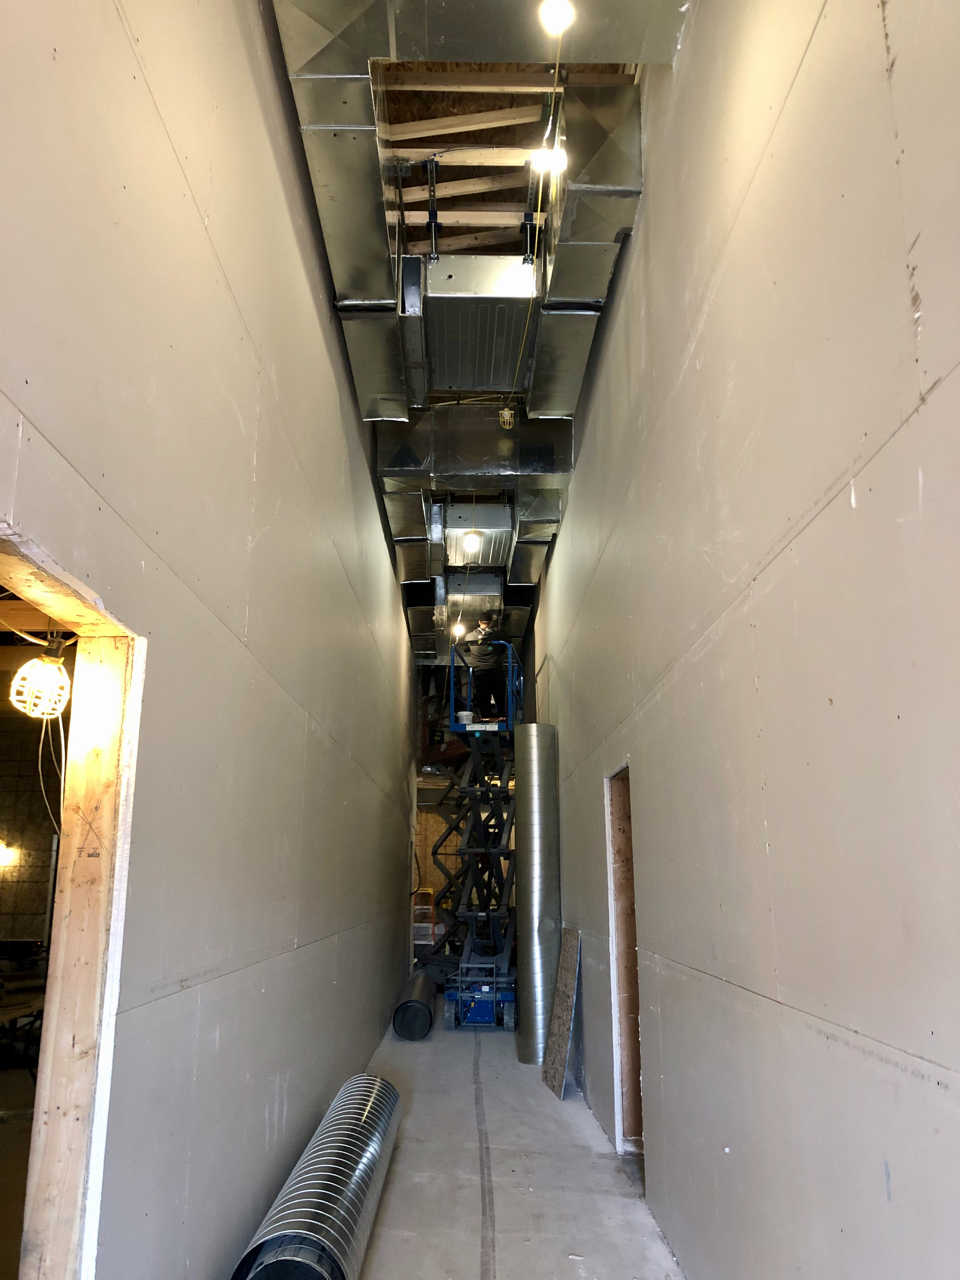 Ductwork continues in the center hallway.